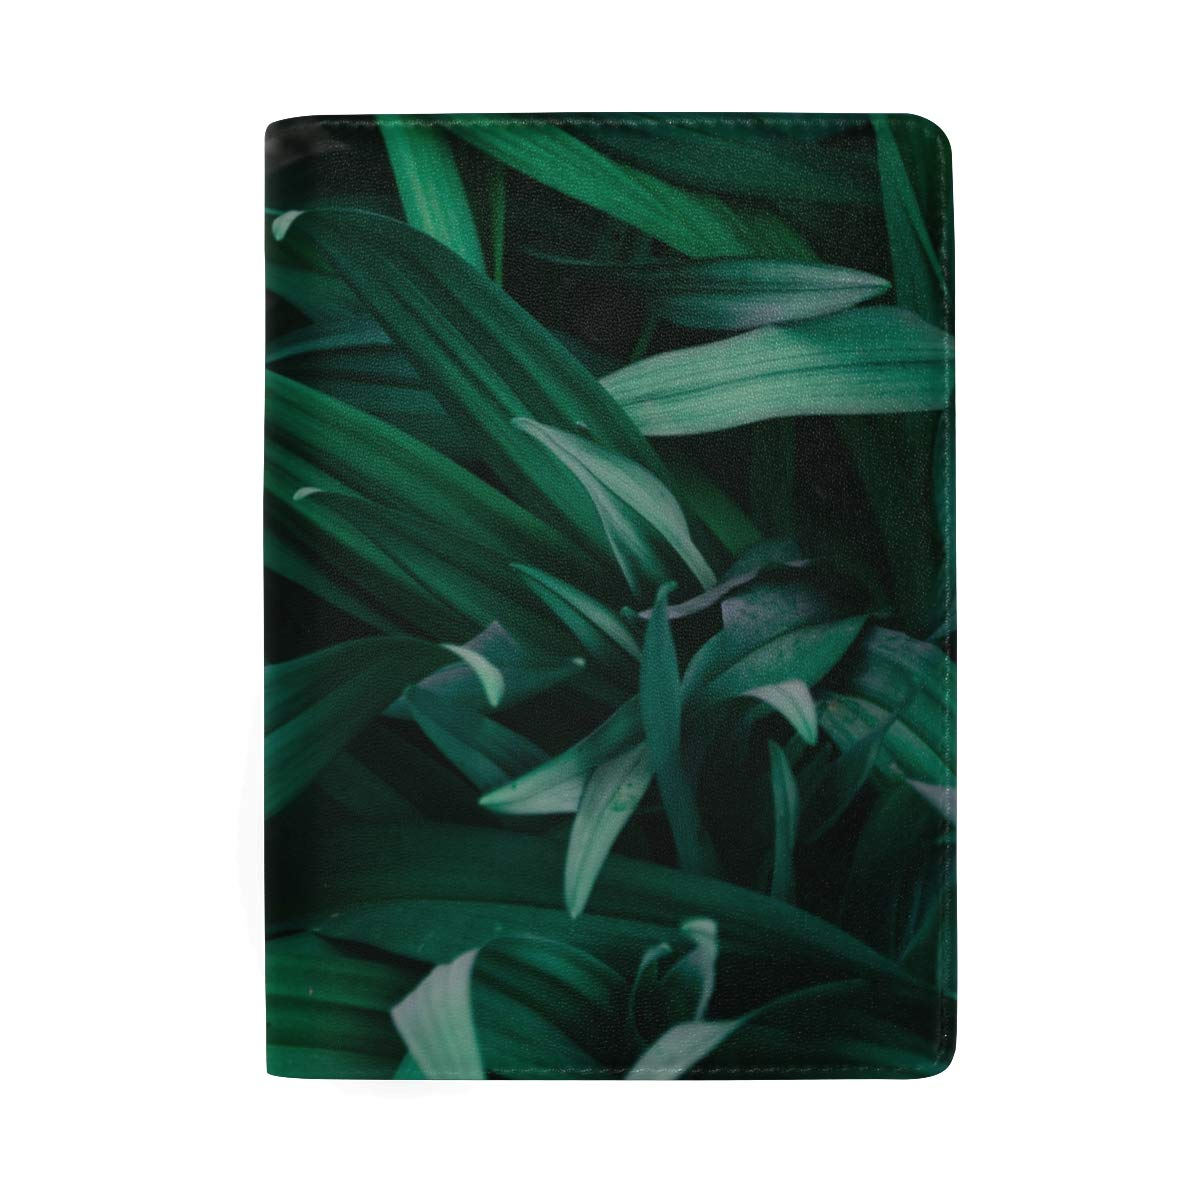 Green Leaf Abstract Evening Leather Passport Holder Cover Case Protector for Men Women Travel with Slots